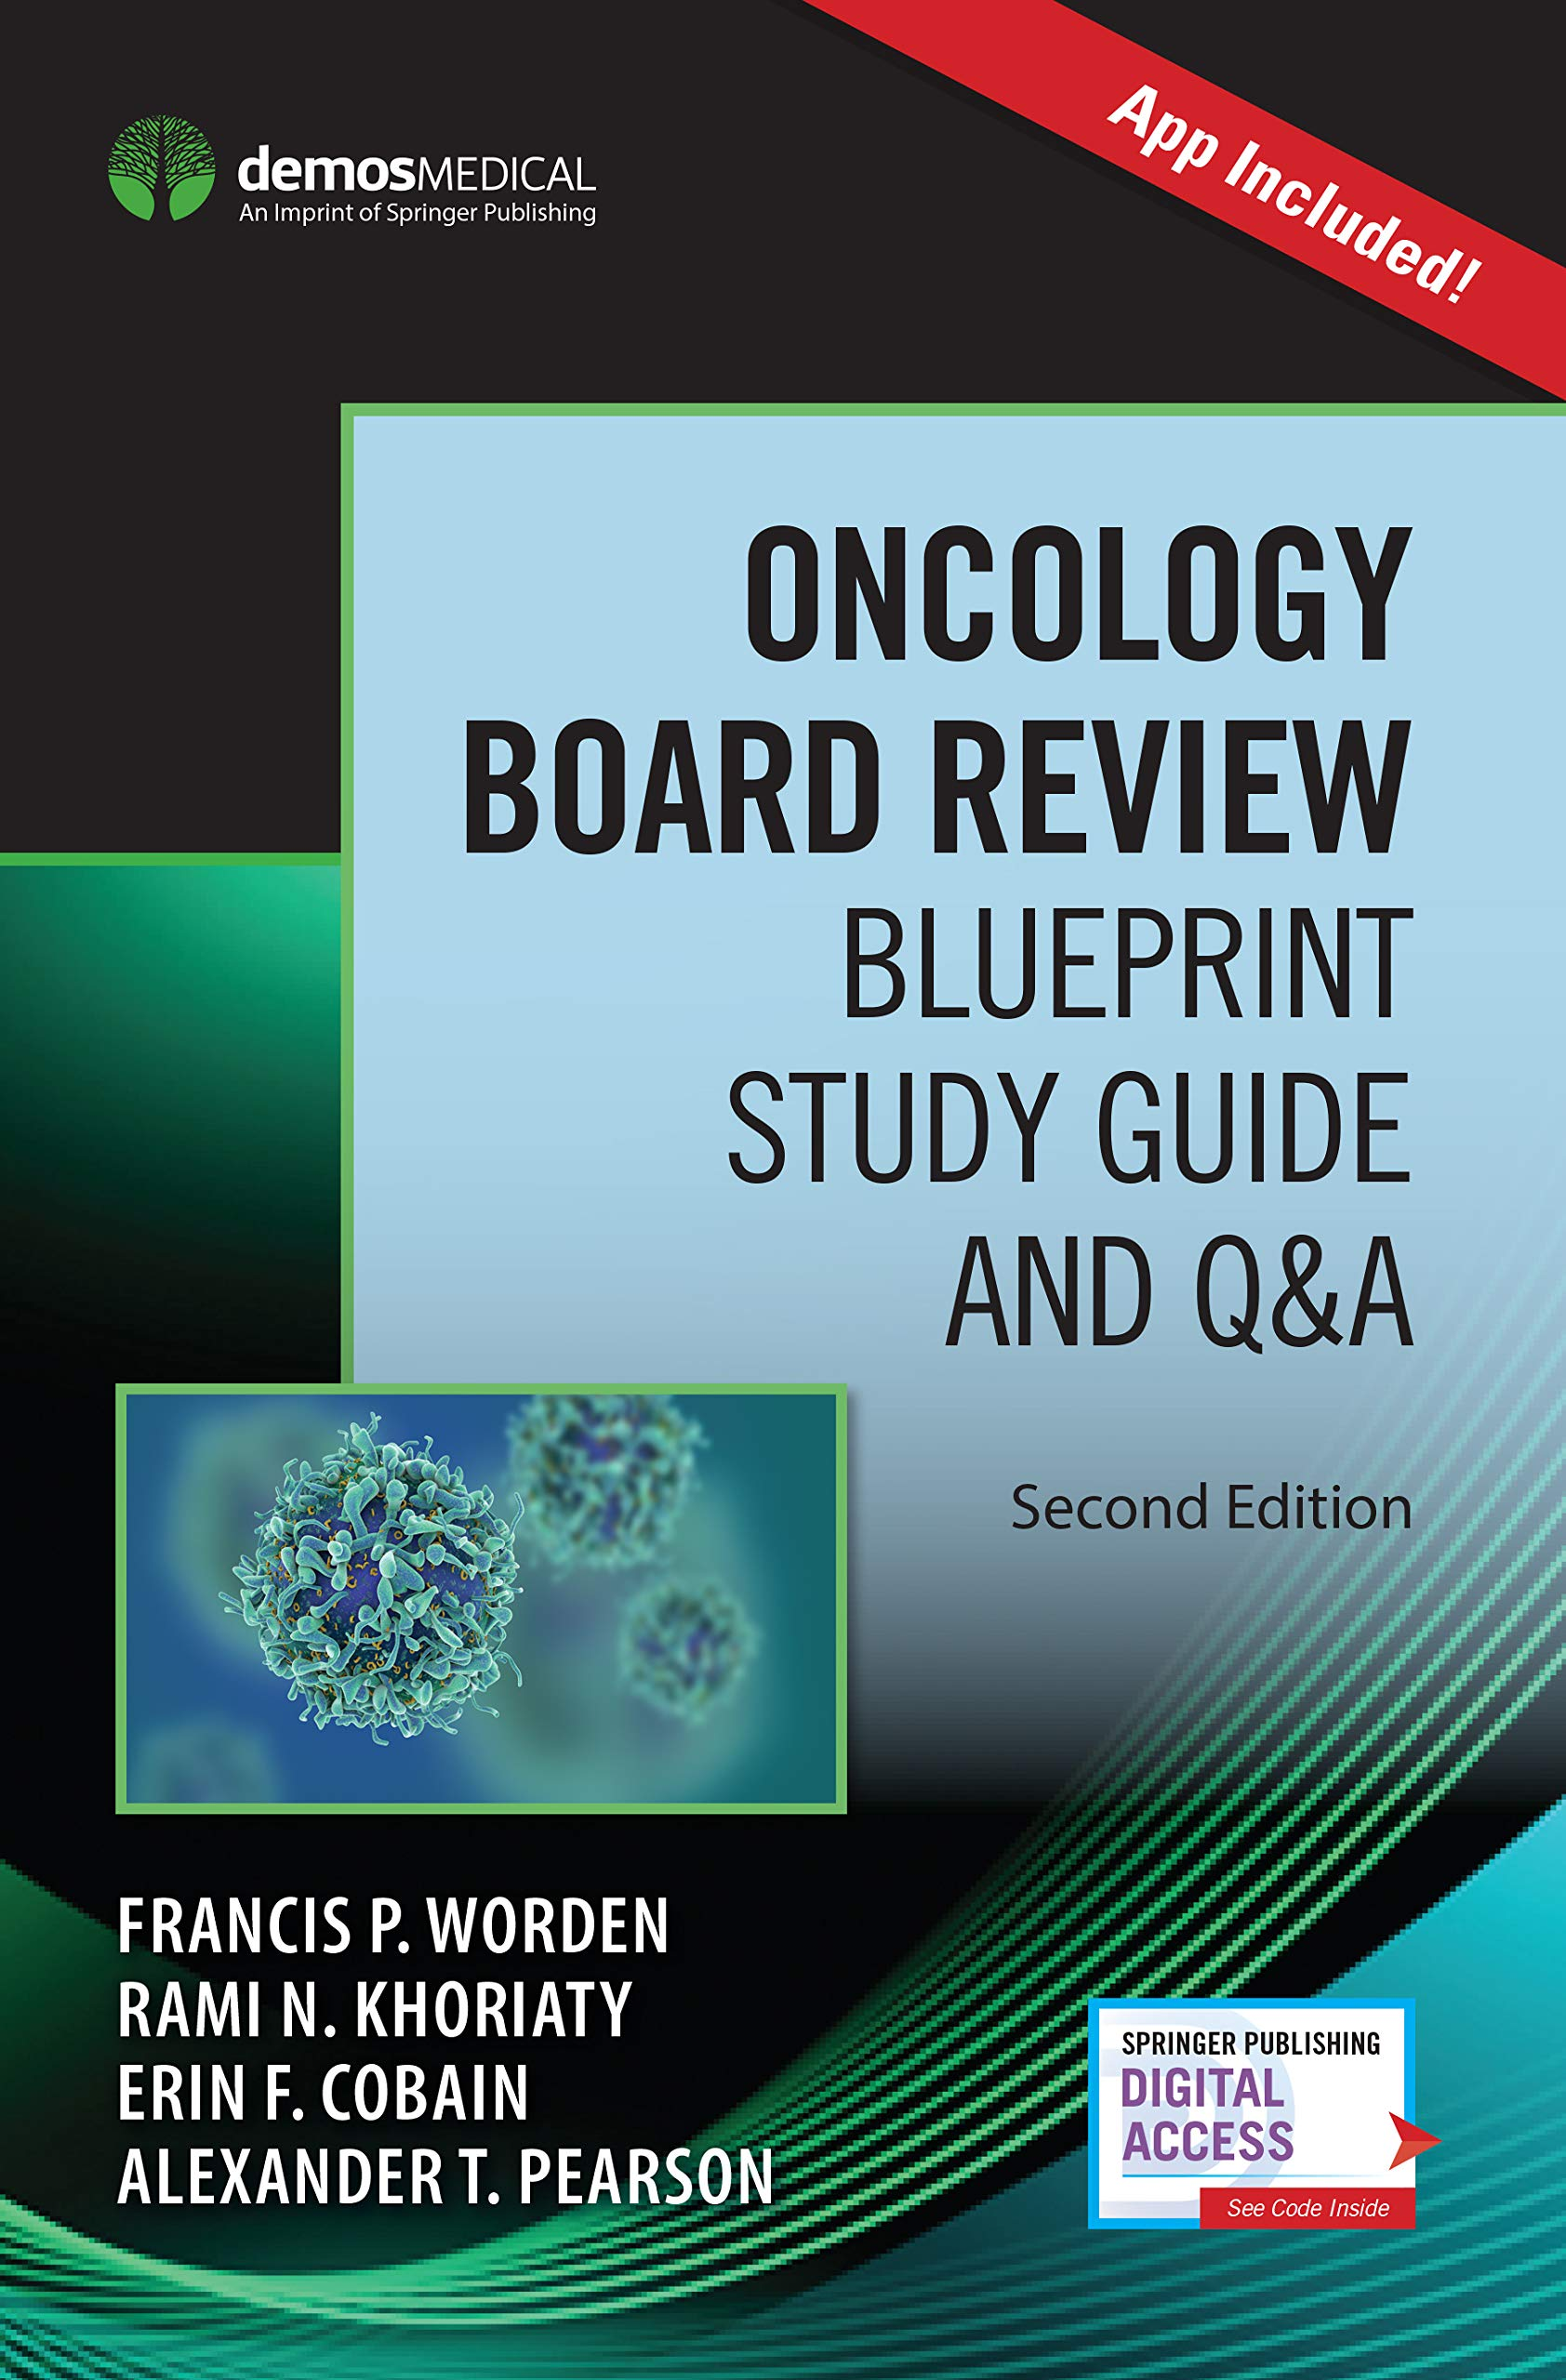 Oncology Board Review, Second Edition (Book + Free App): Francis P